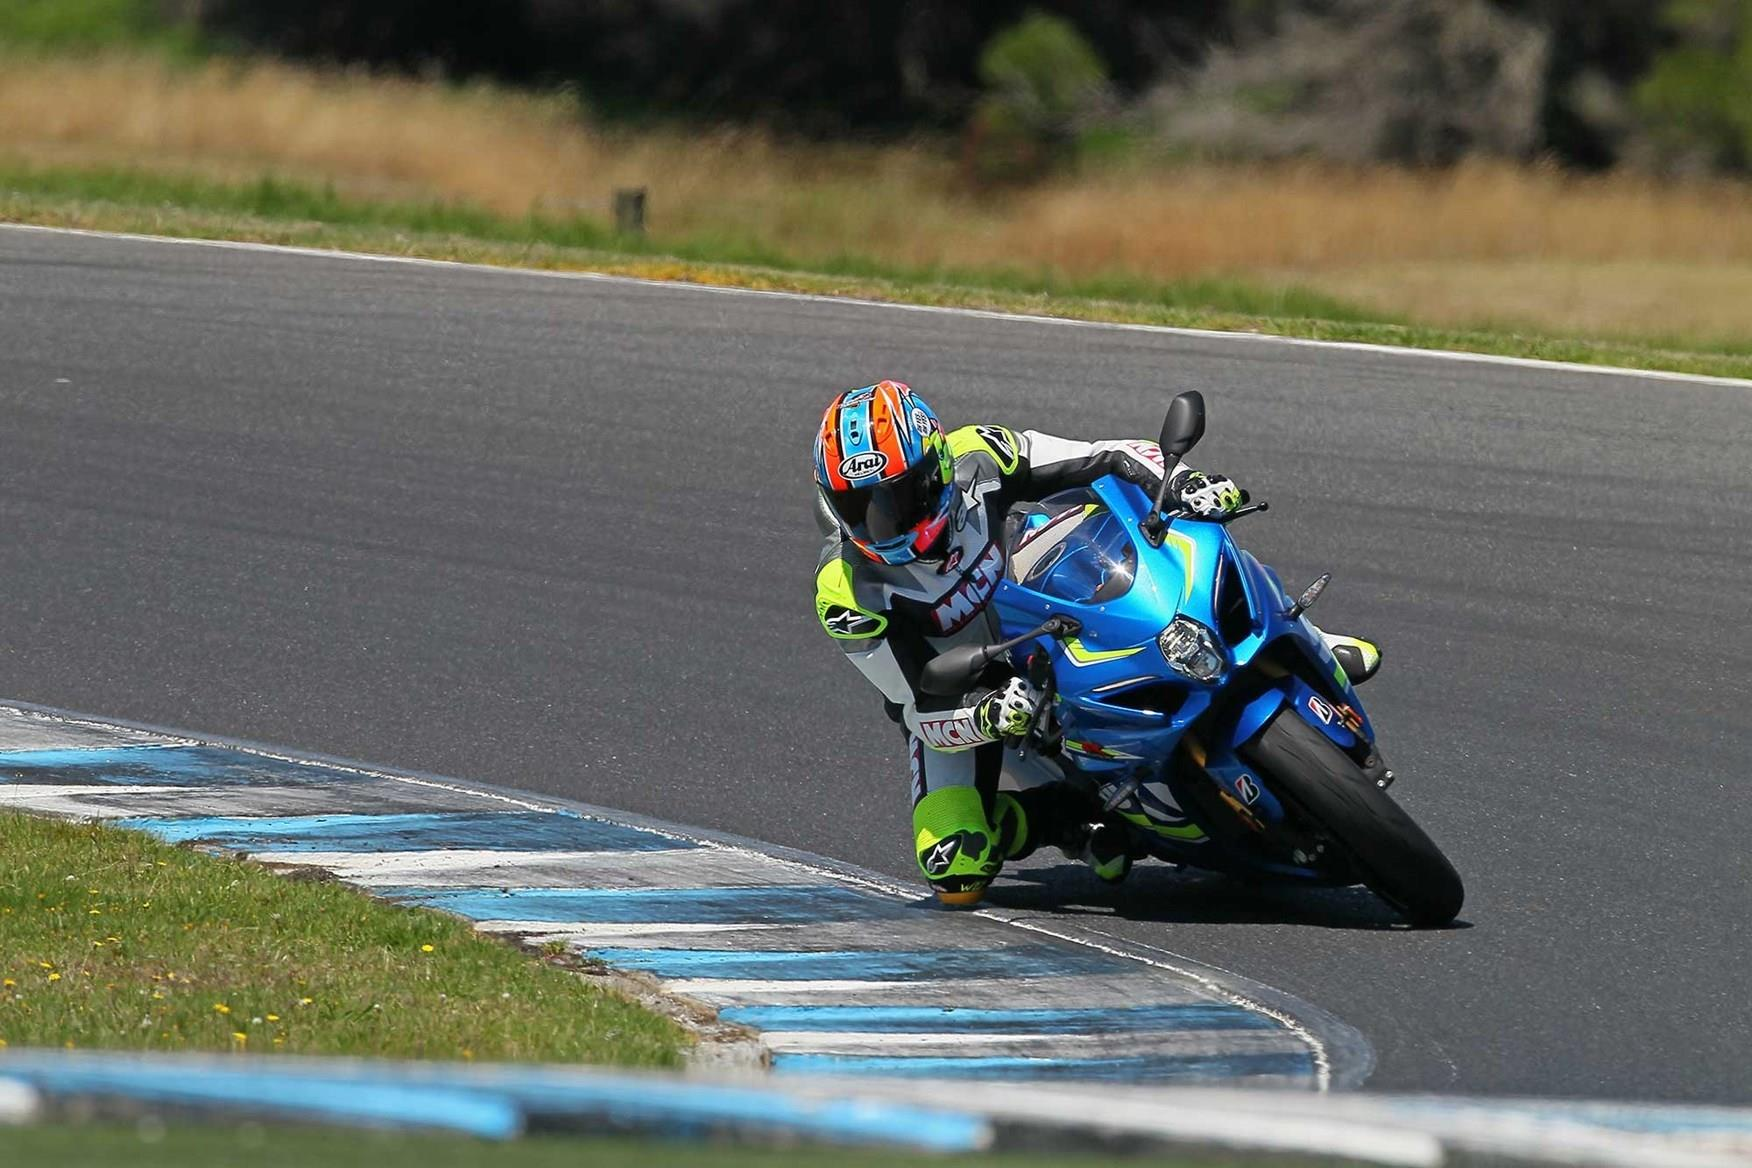 Neeves in action once more on the Suzuki GSX-R1000R